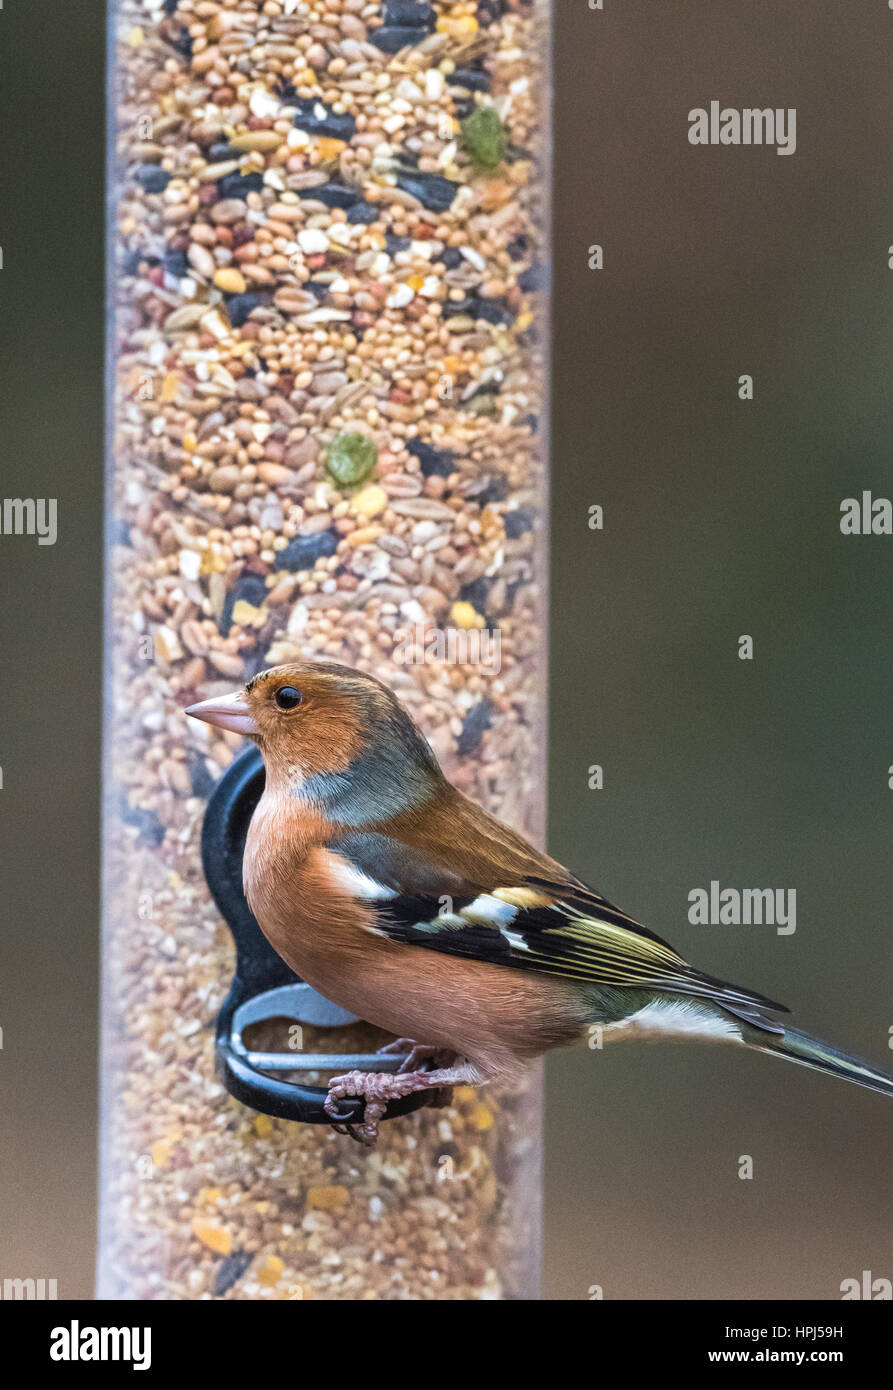 Adult Male Chaffinch searched on a bird feeder Stock Photo